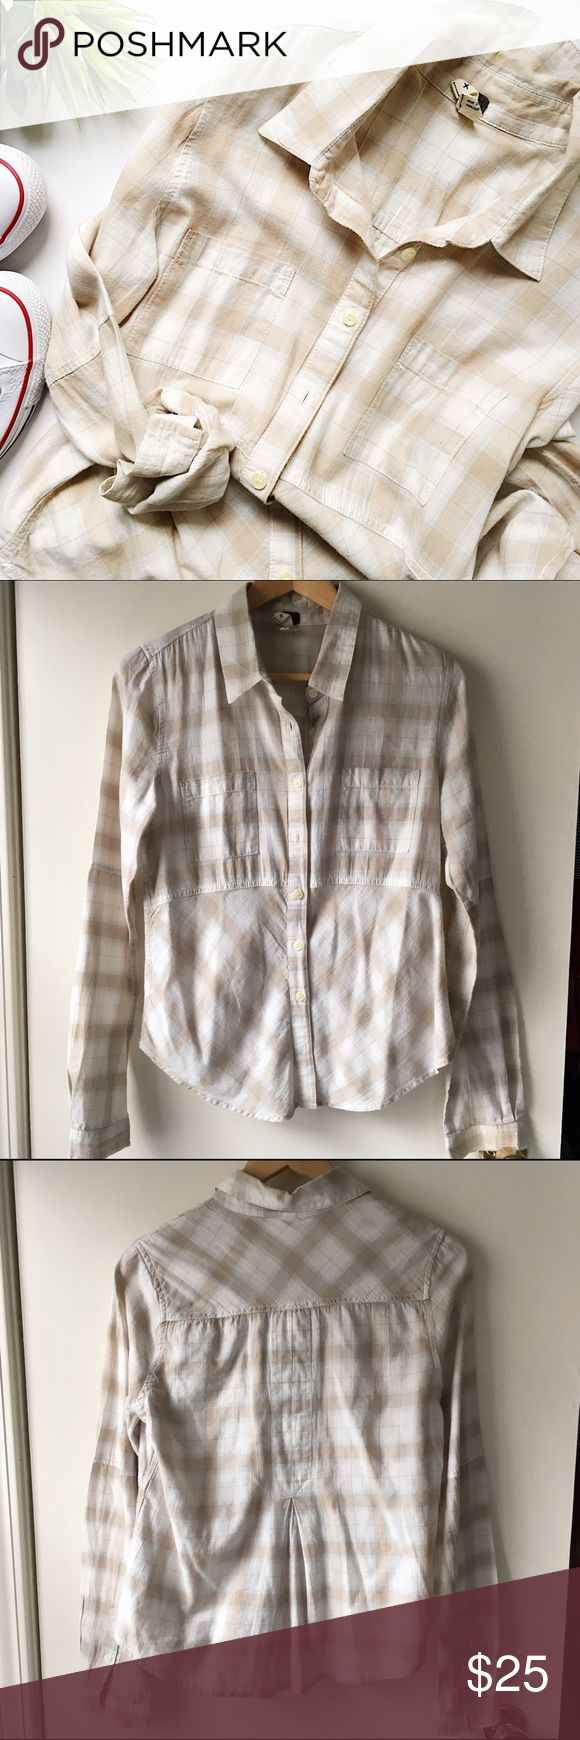 Free People Plaid Button Down Great neutral colors to transition through all seasons. Good with jeans and boots or white shorts and wedges. In excellent condition.   🚫 No Trades/🅿️🅿️ ✨ 100% Authentic 💵 Offers Welcome 💰 Bundle Discount 📬 Ships in 1-2 Days Free People Tops Button Down Shirts